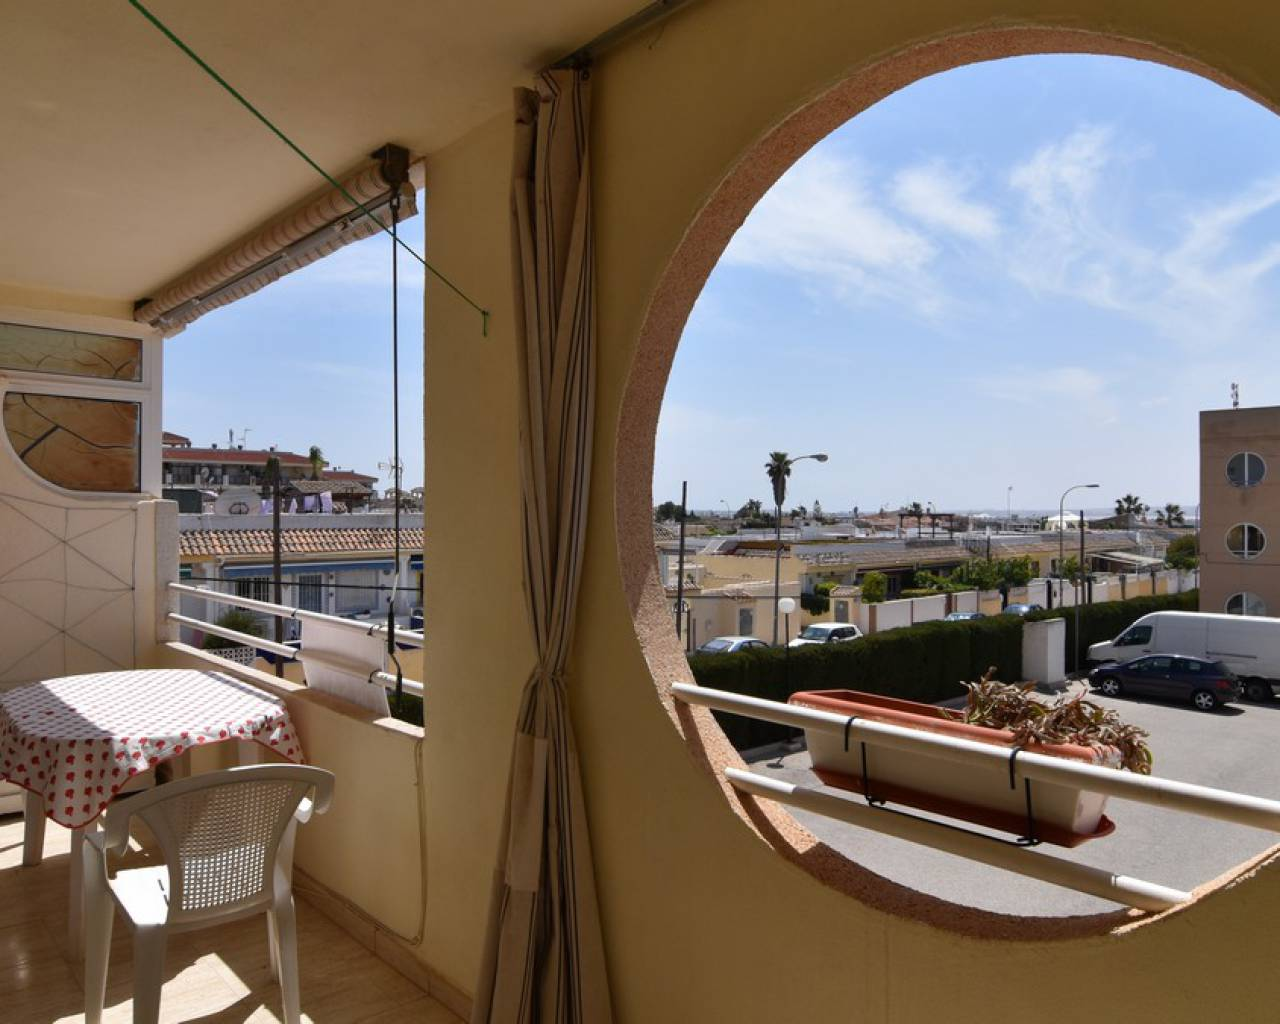 Sale - Appartement - Torrevieja - El Chaparral